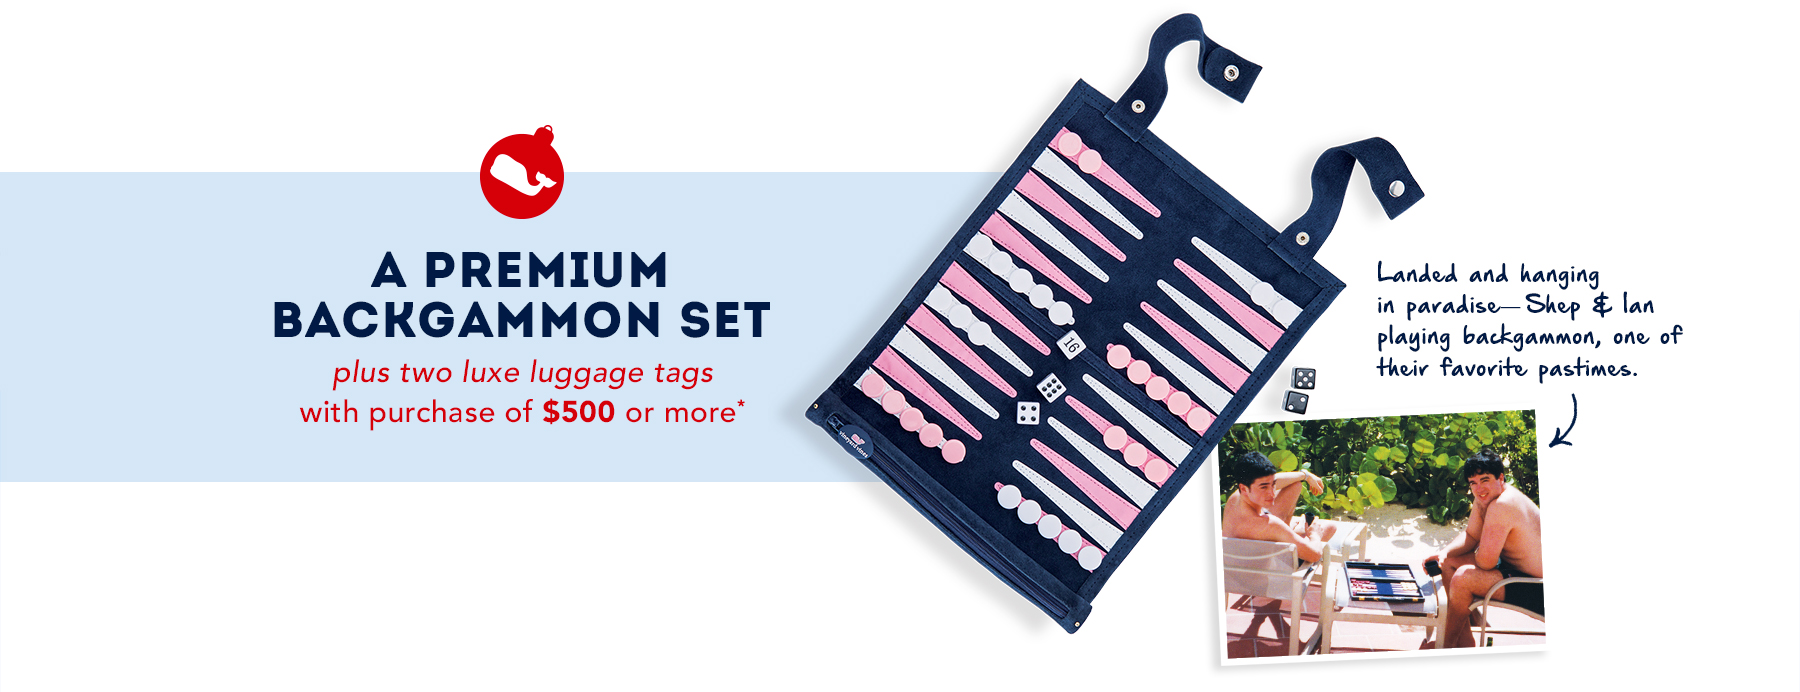 A premium backgammon set plus two luxe luggage tags with a purchase of $500 or more.